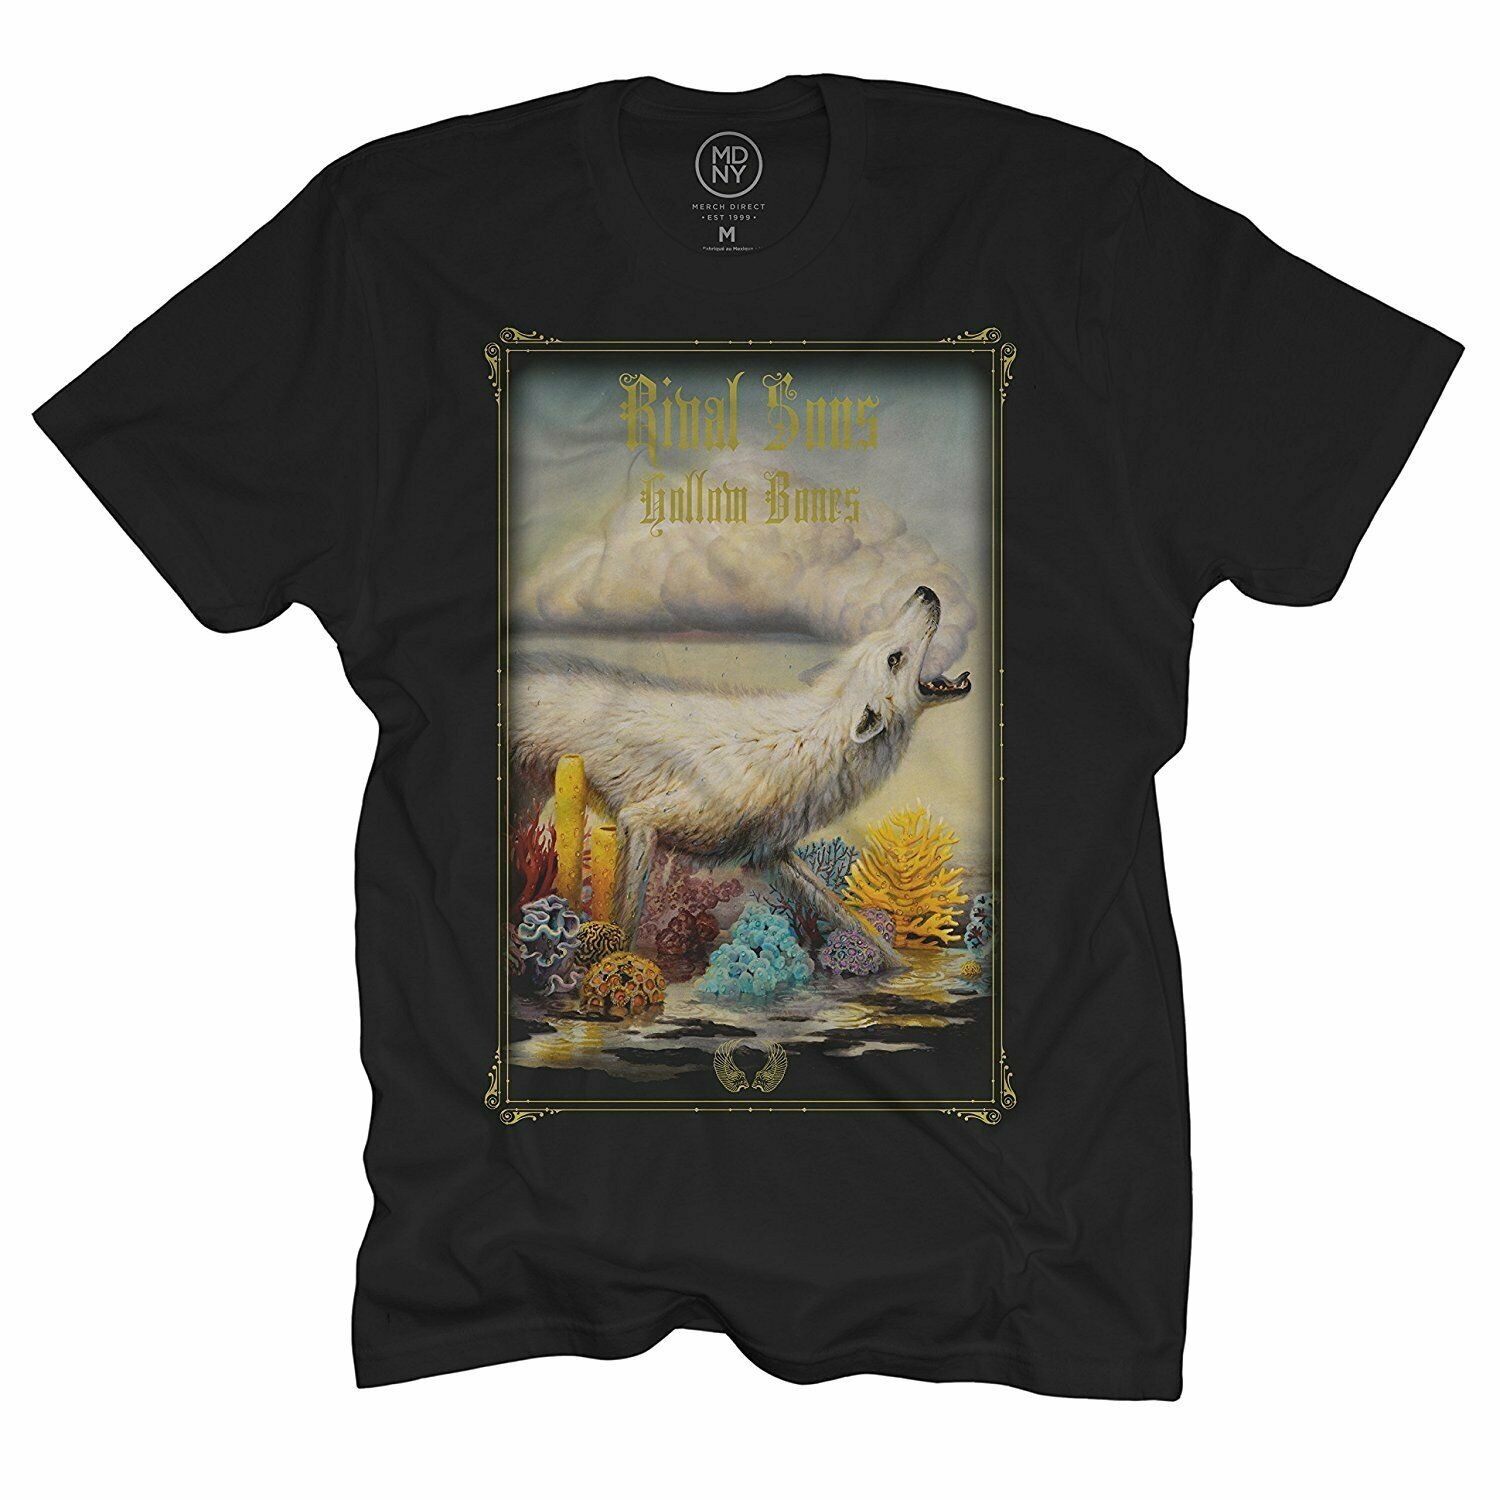 Authentic Rival Sons Band Hollow Bones Album Cover Logo T Shirt Black S 2Xl New